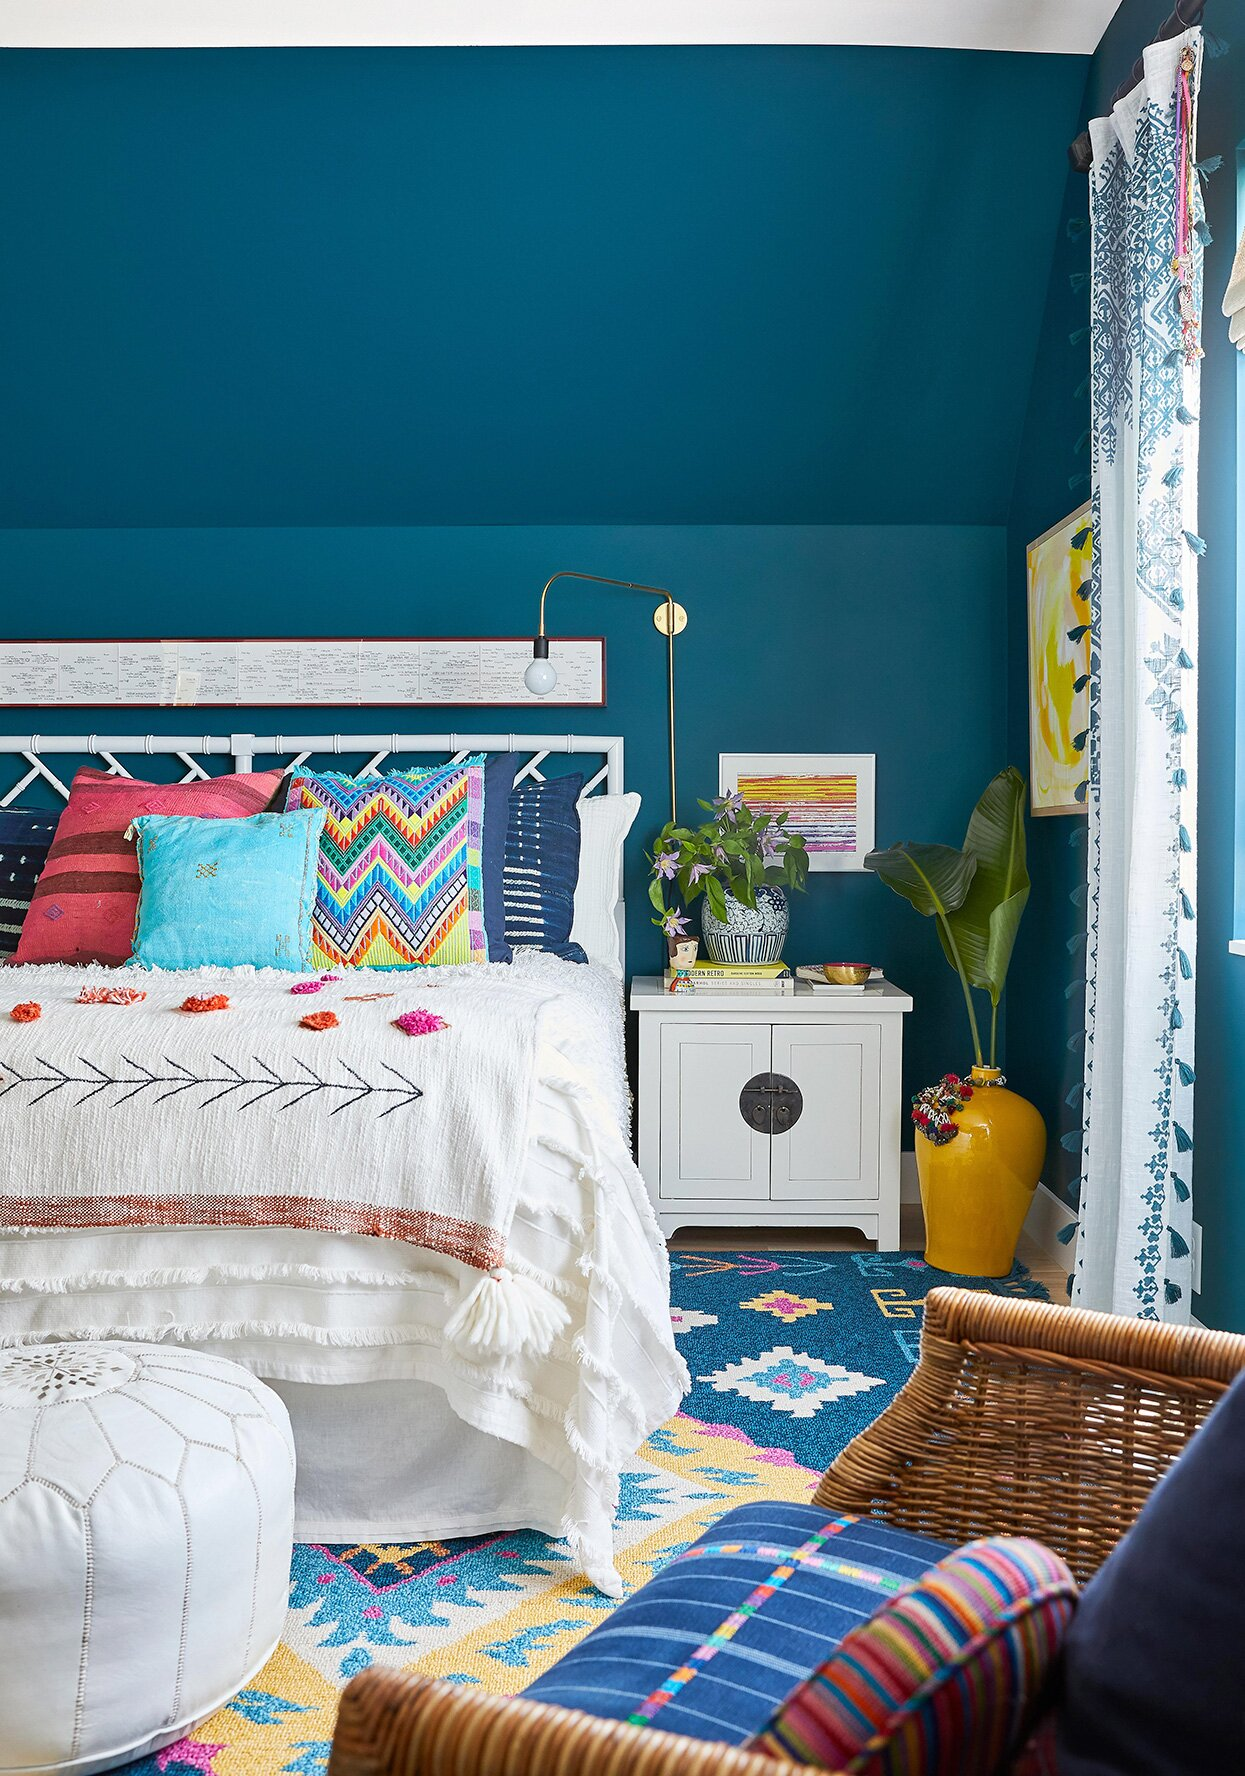 8 Distinctive Ways to Decorate with Blue Walls in Every Shade